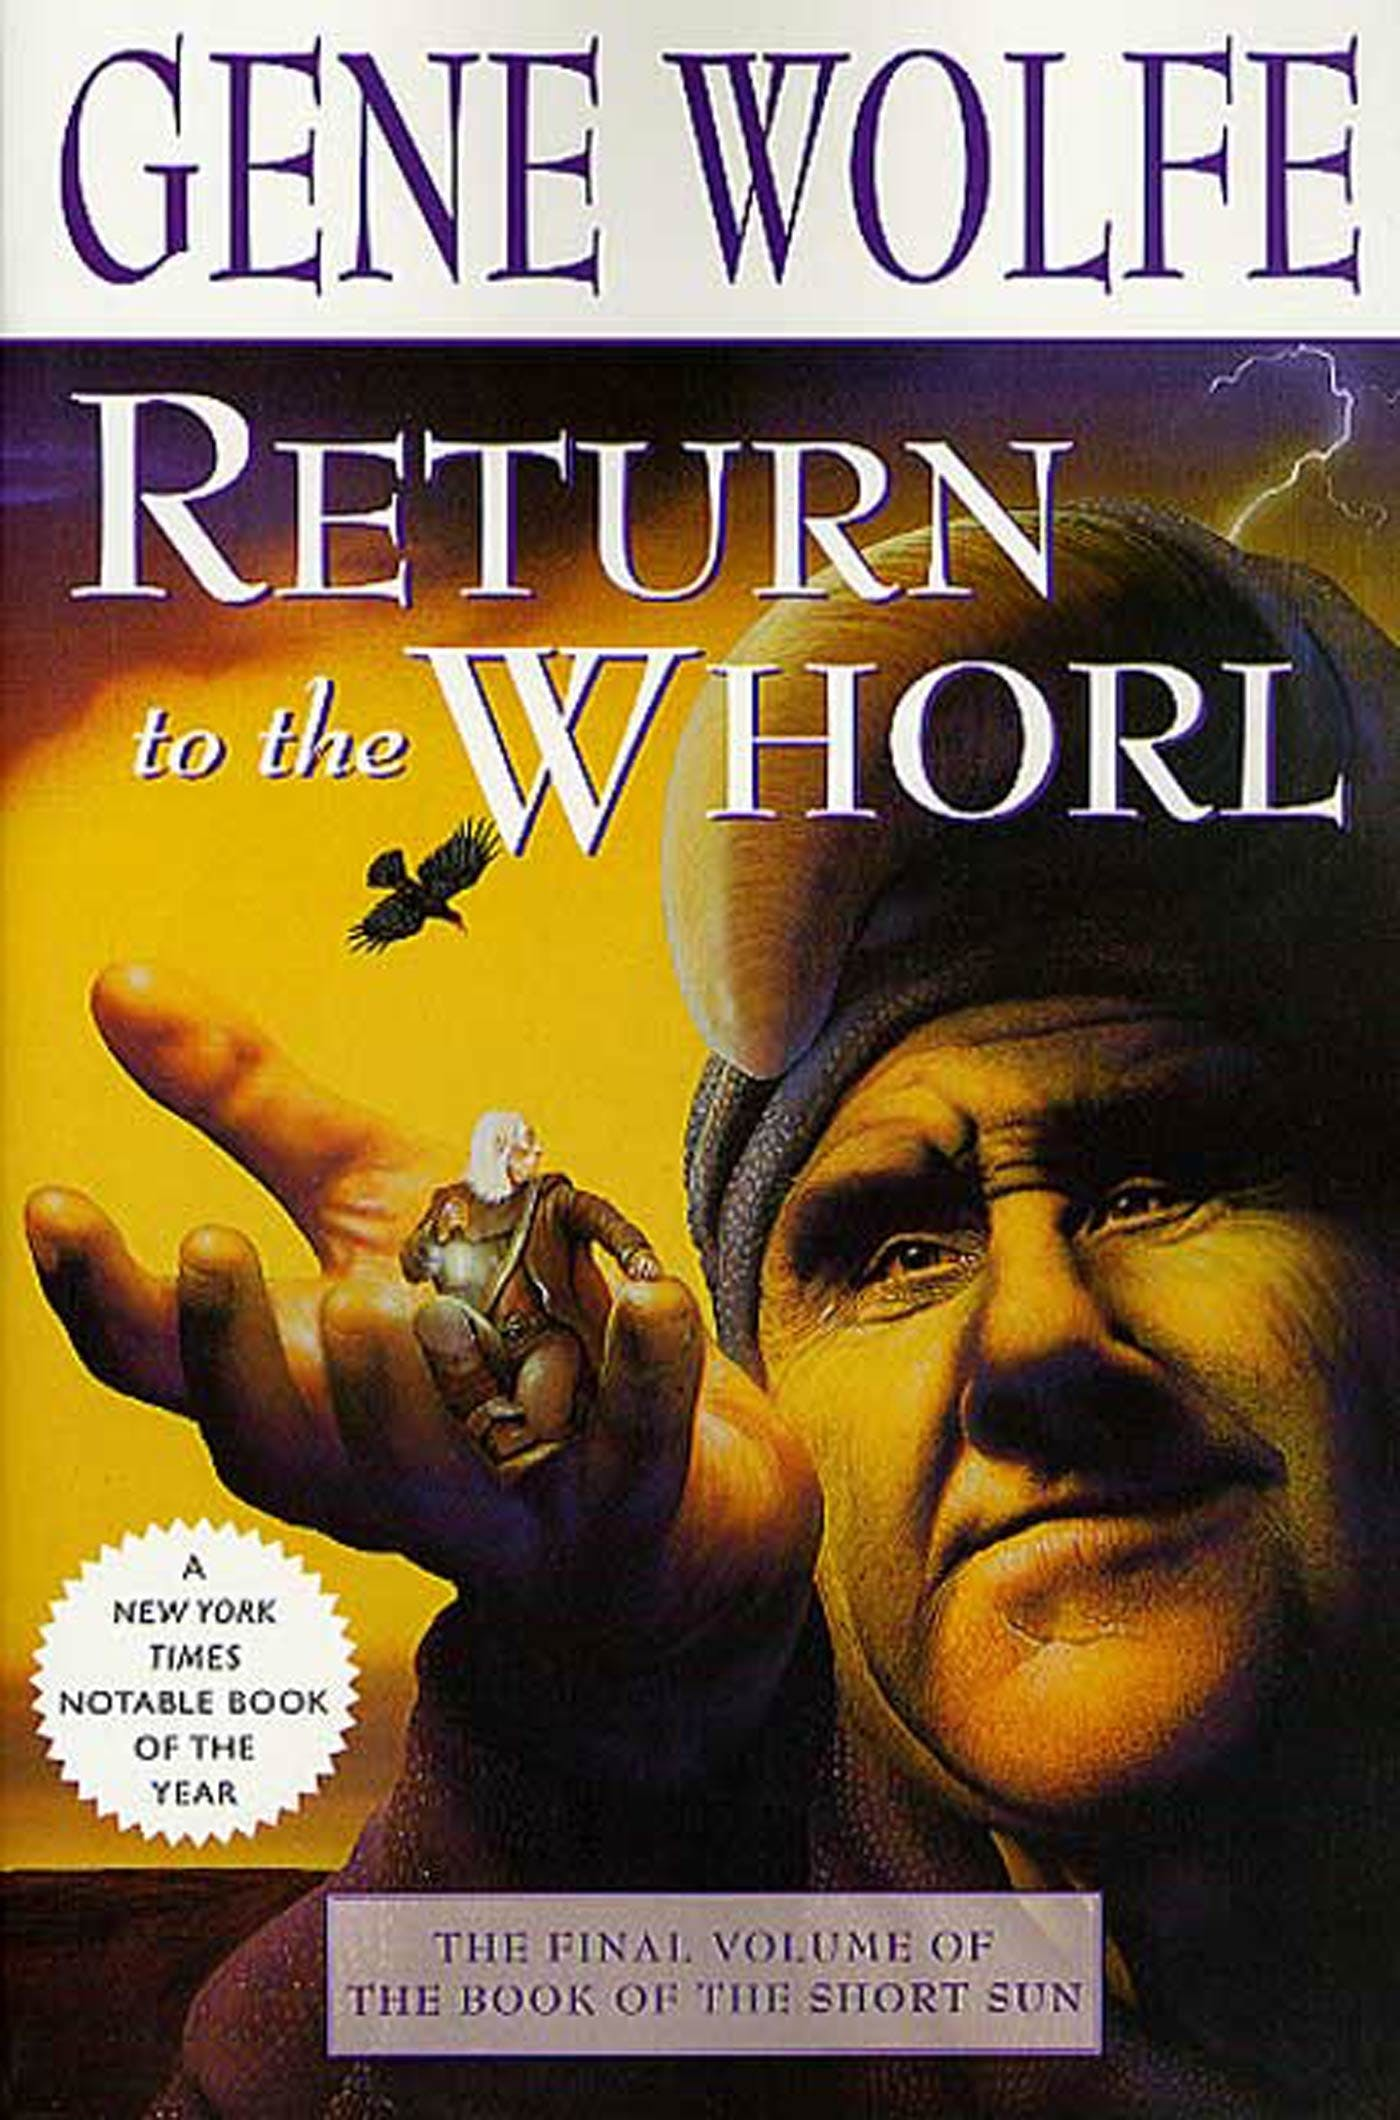 Image of Return to the Whorl